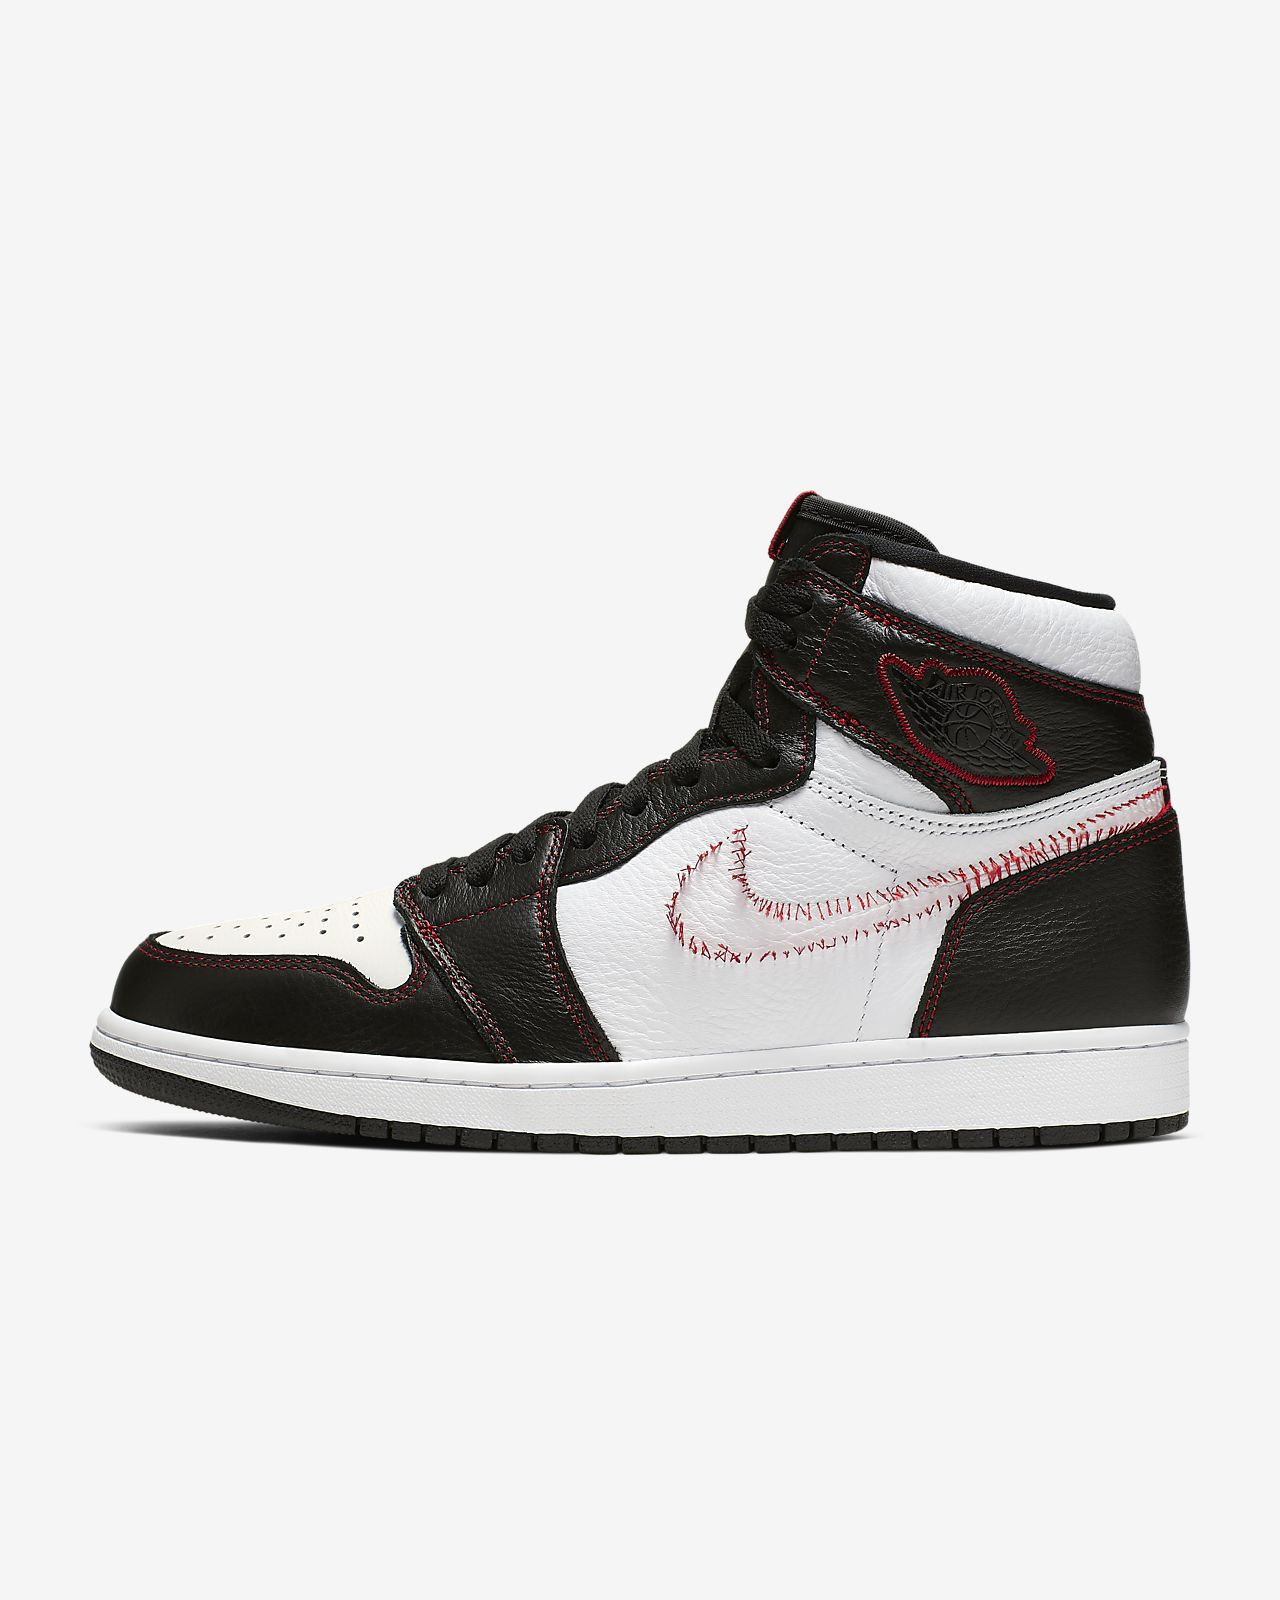 quality design 91111 3d87e Air Jordan 1 High OG Defiant Men's Shoe